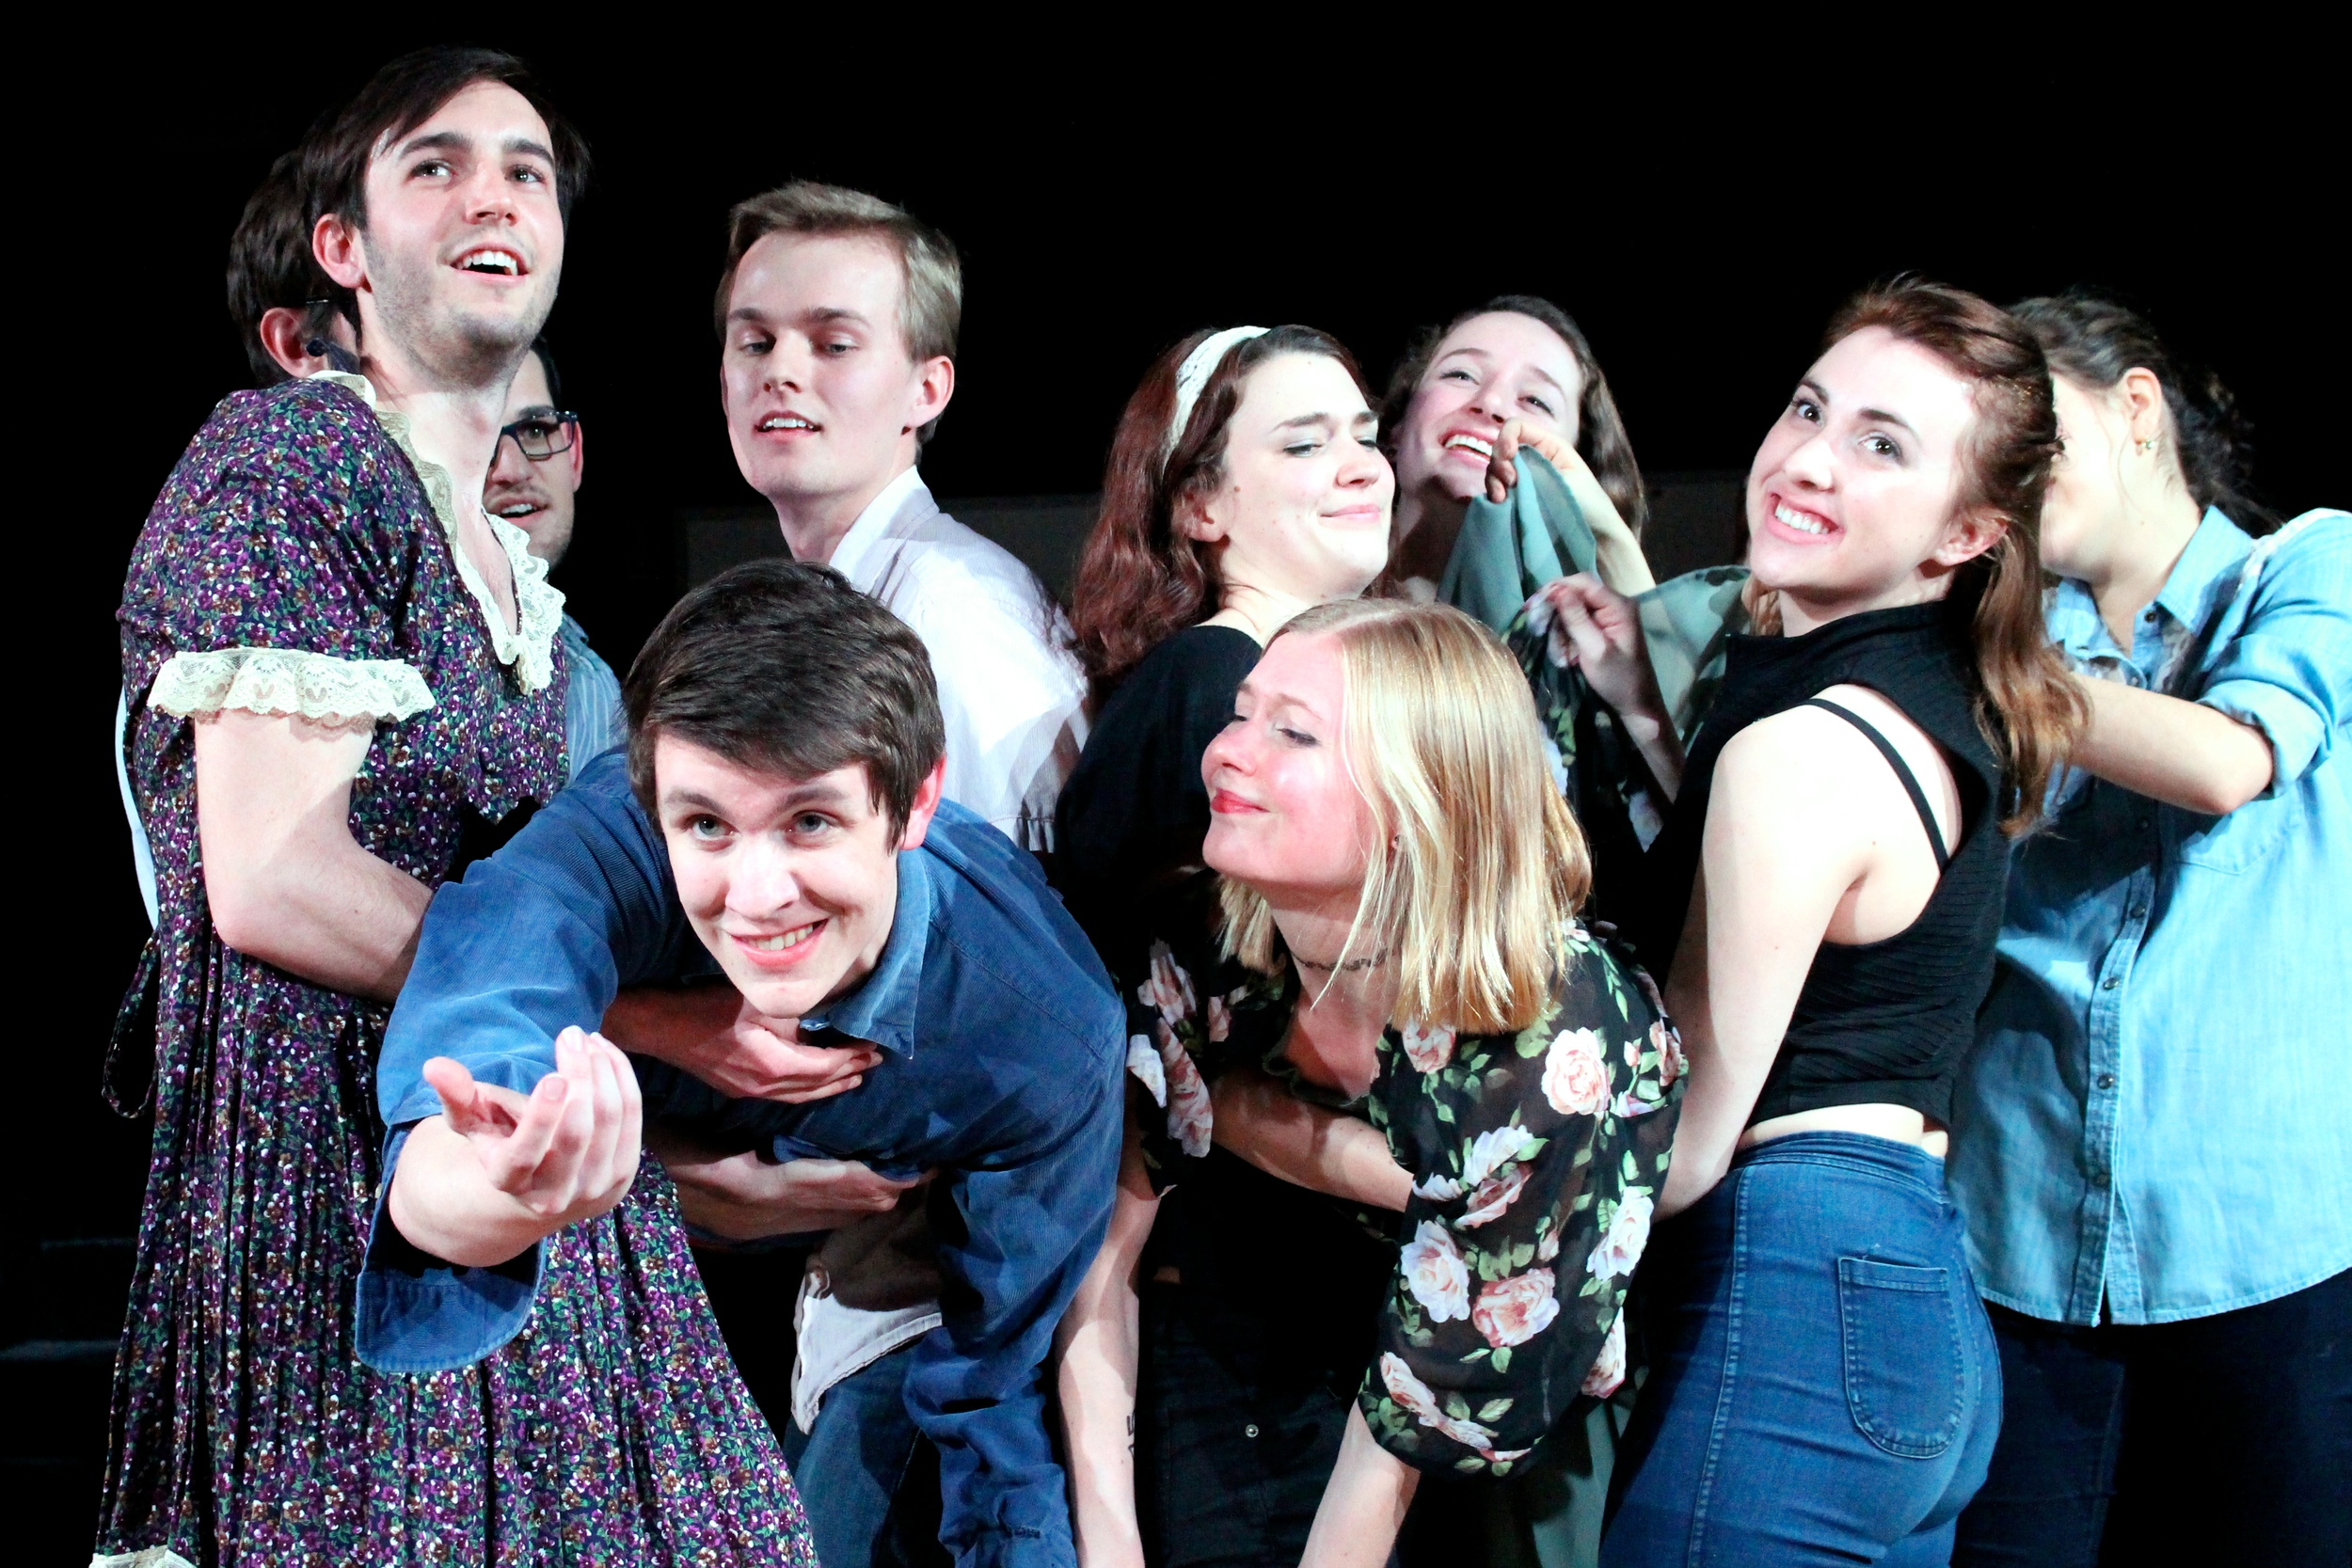 Sarah Lawrence's improv comedy troupe, Lampoon, performed a Superman-inspired sketch at a recent show. Photos by Ellie Brumbaum '17